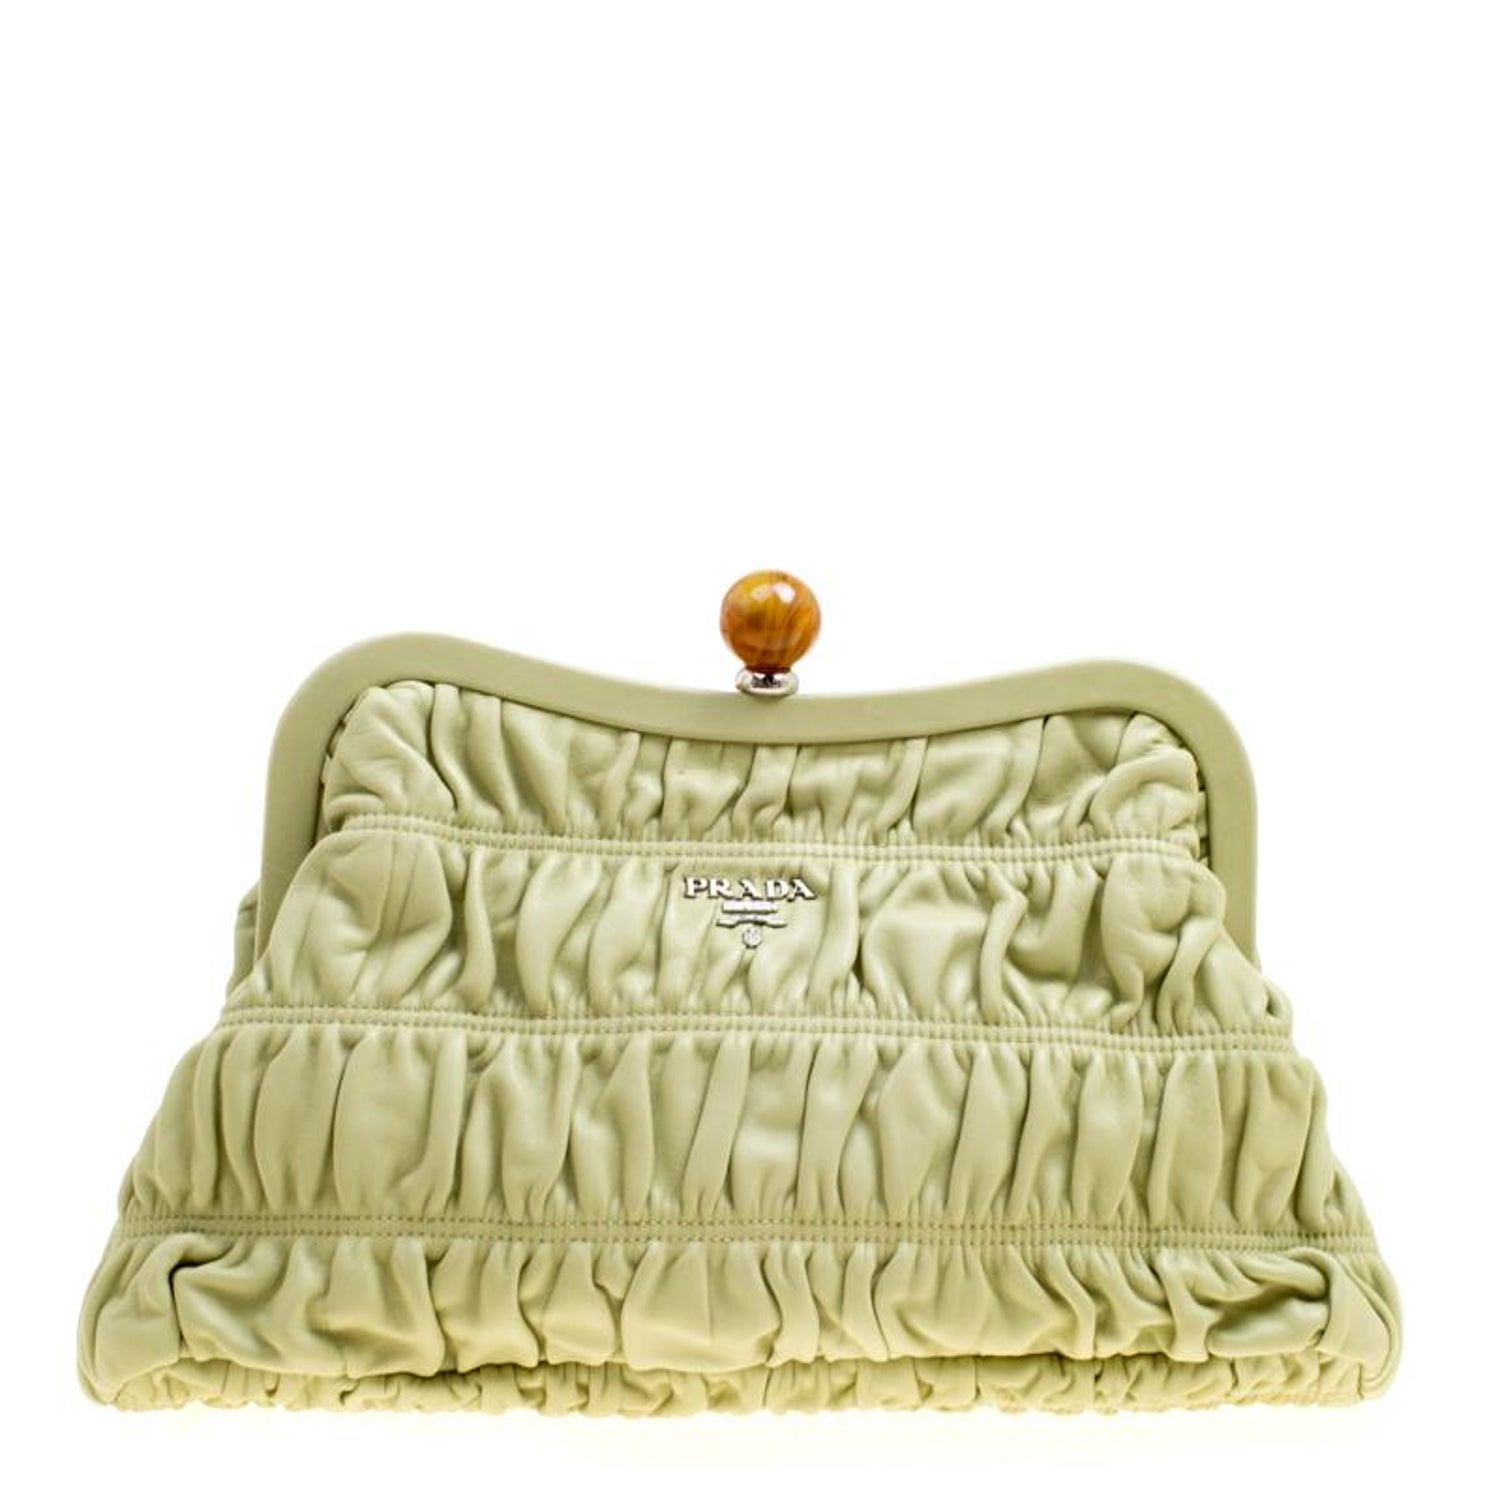 6464fd6d679d Prada Pistachio Nappa Gaufre Leather Frame Clutch For Sale at 1stdibs